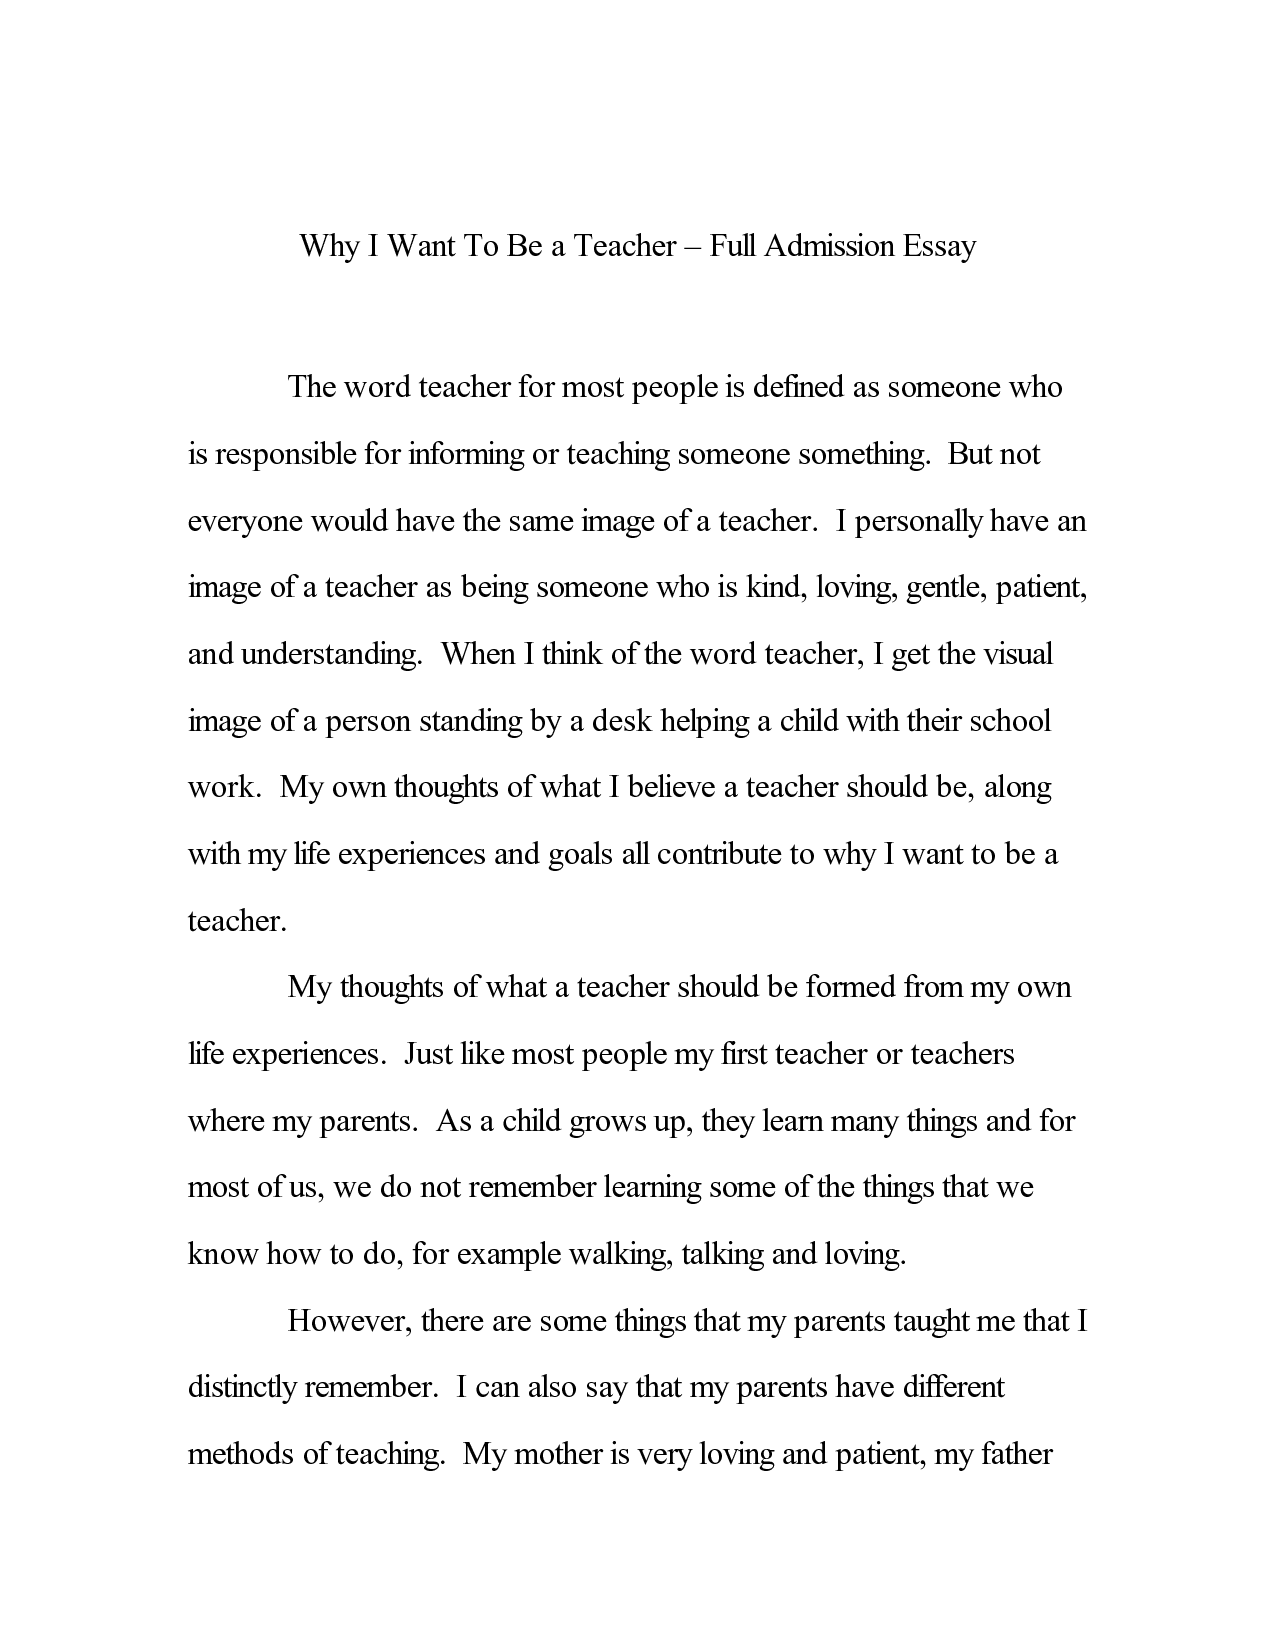 Application essay format